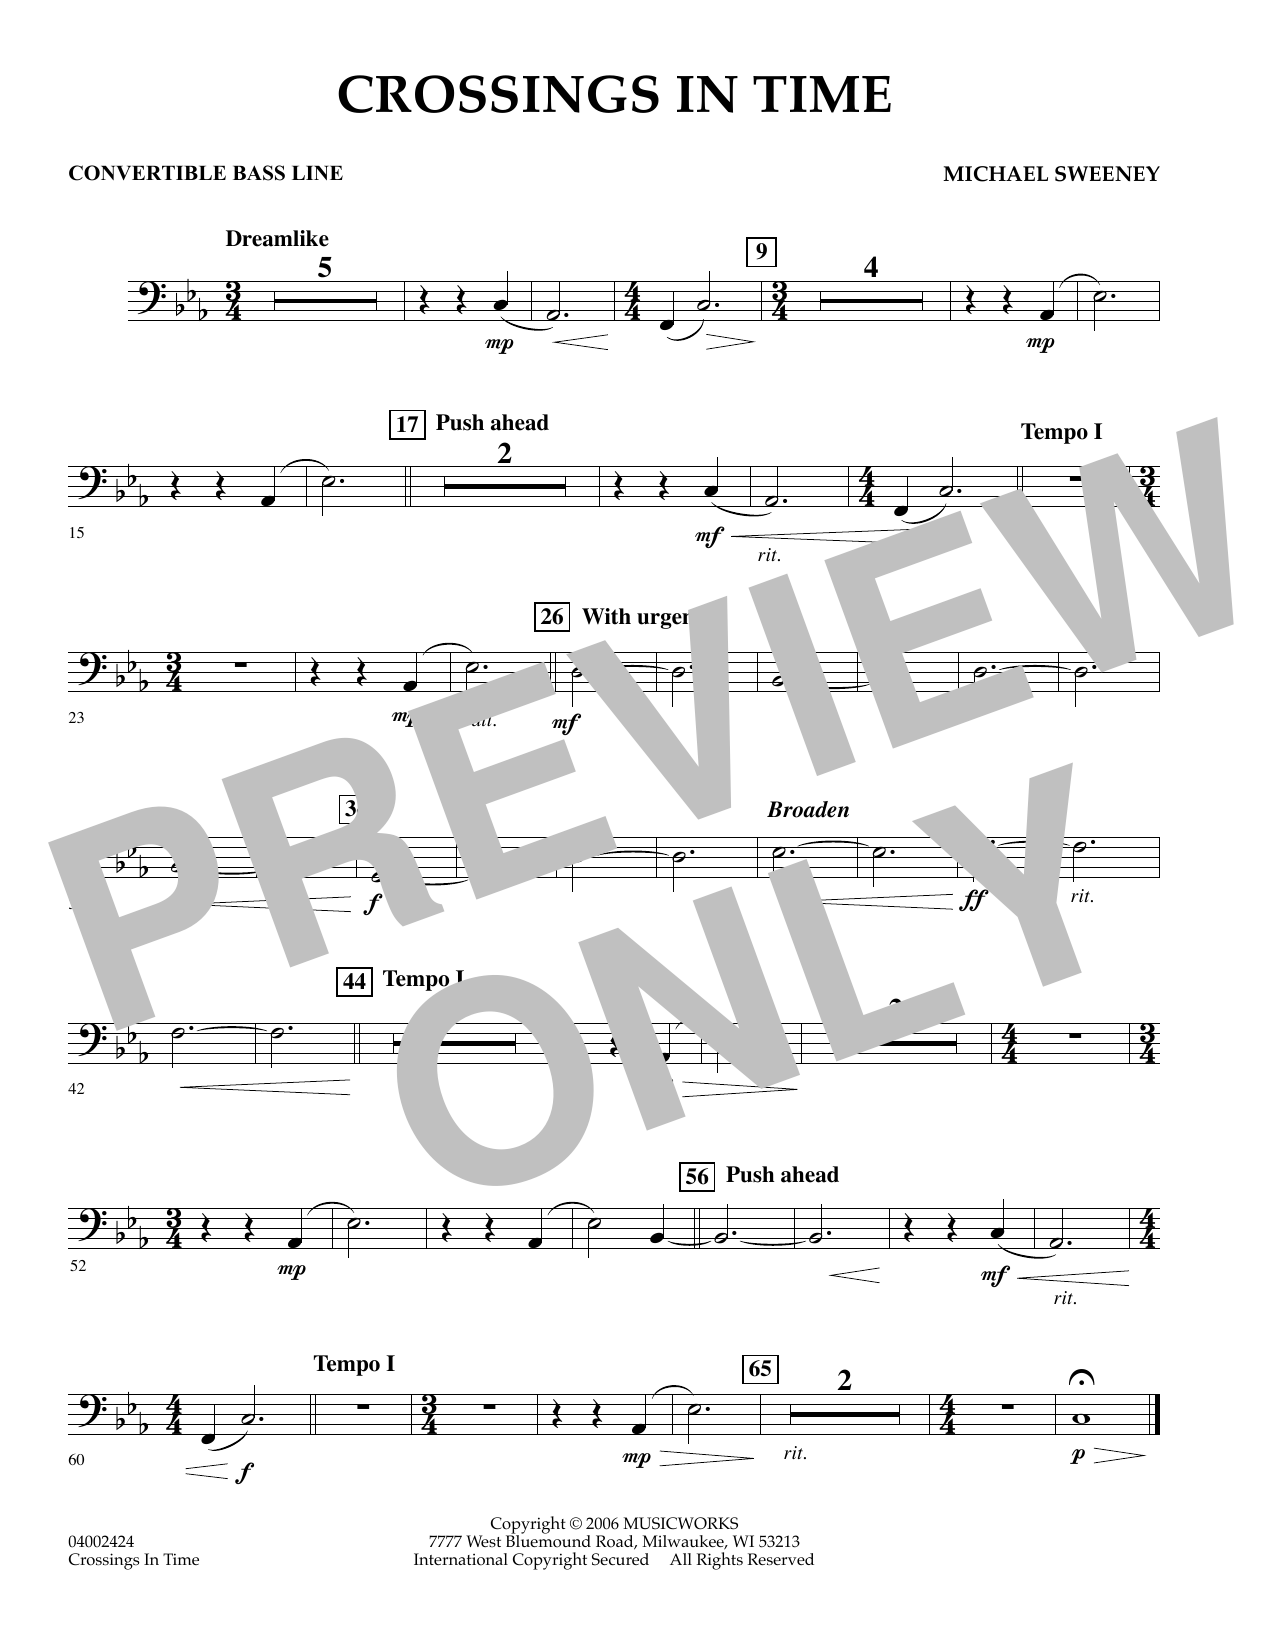 Michael Sweeney Crossings In Time - Convertible Bass Line sheet music preview music notes and score for Concert Band including 1 page(s)